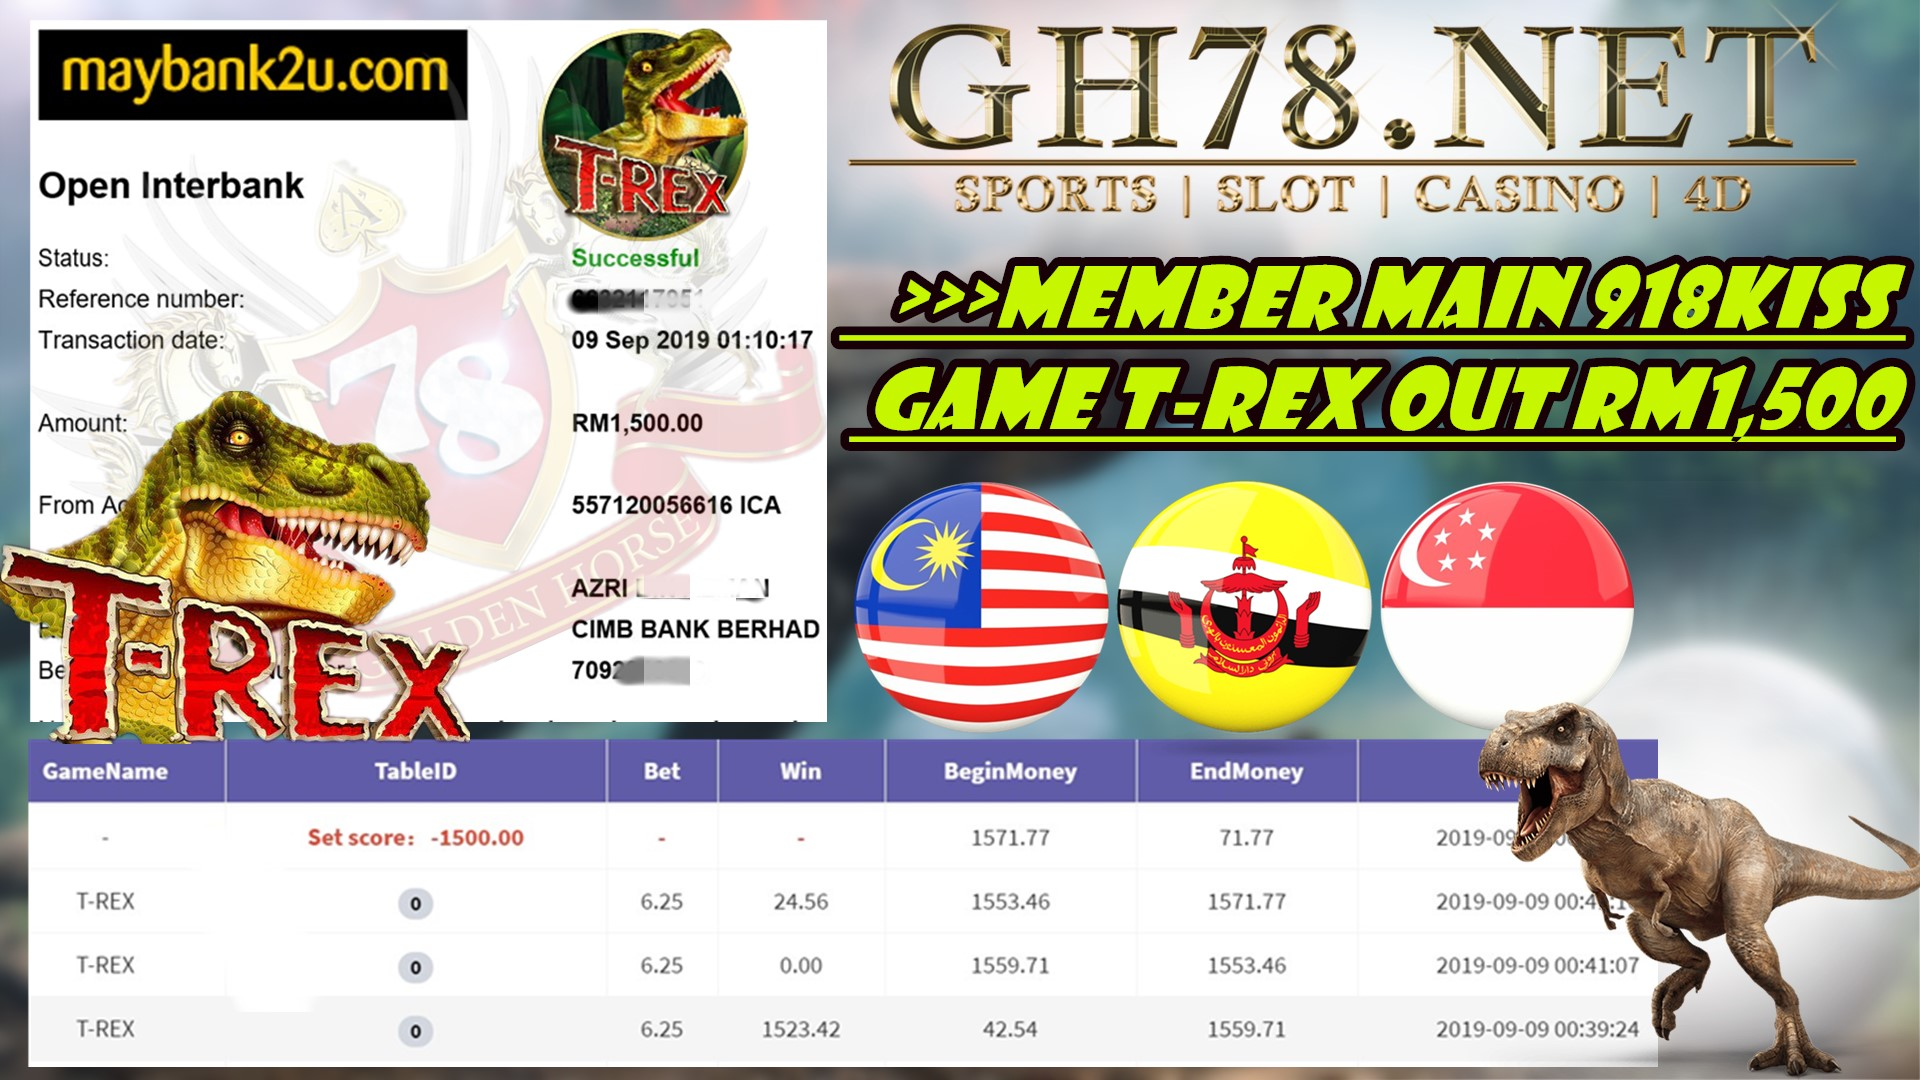 MEMBER MAIN GAME 918KISS FT.T-REX MINTA OUT RM1,500